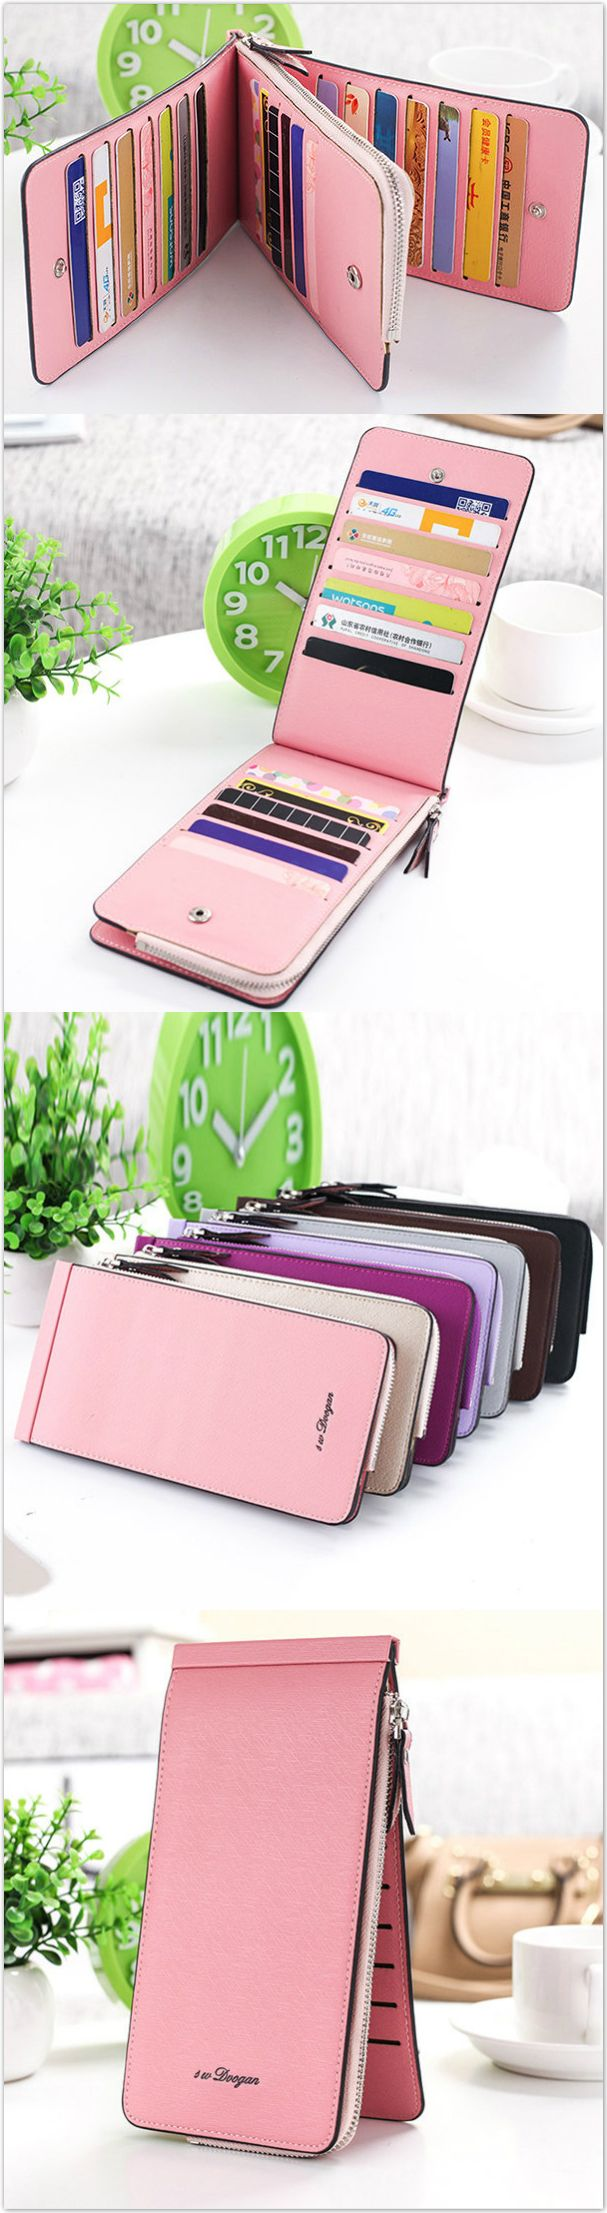 [Flash Deal!]Phone bag for woman. Small and convenient enough to keep in your bags.